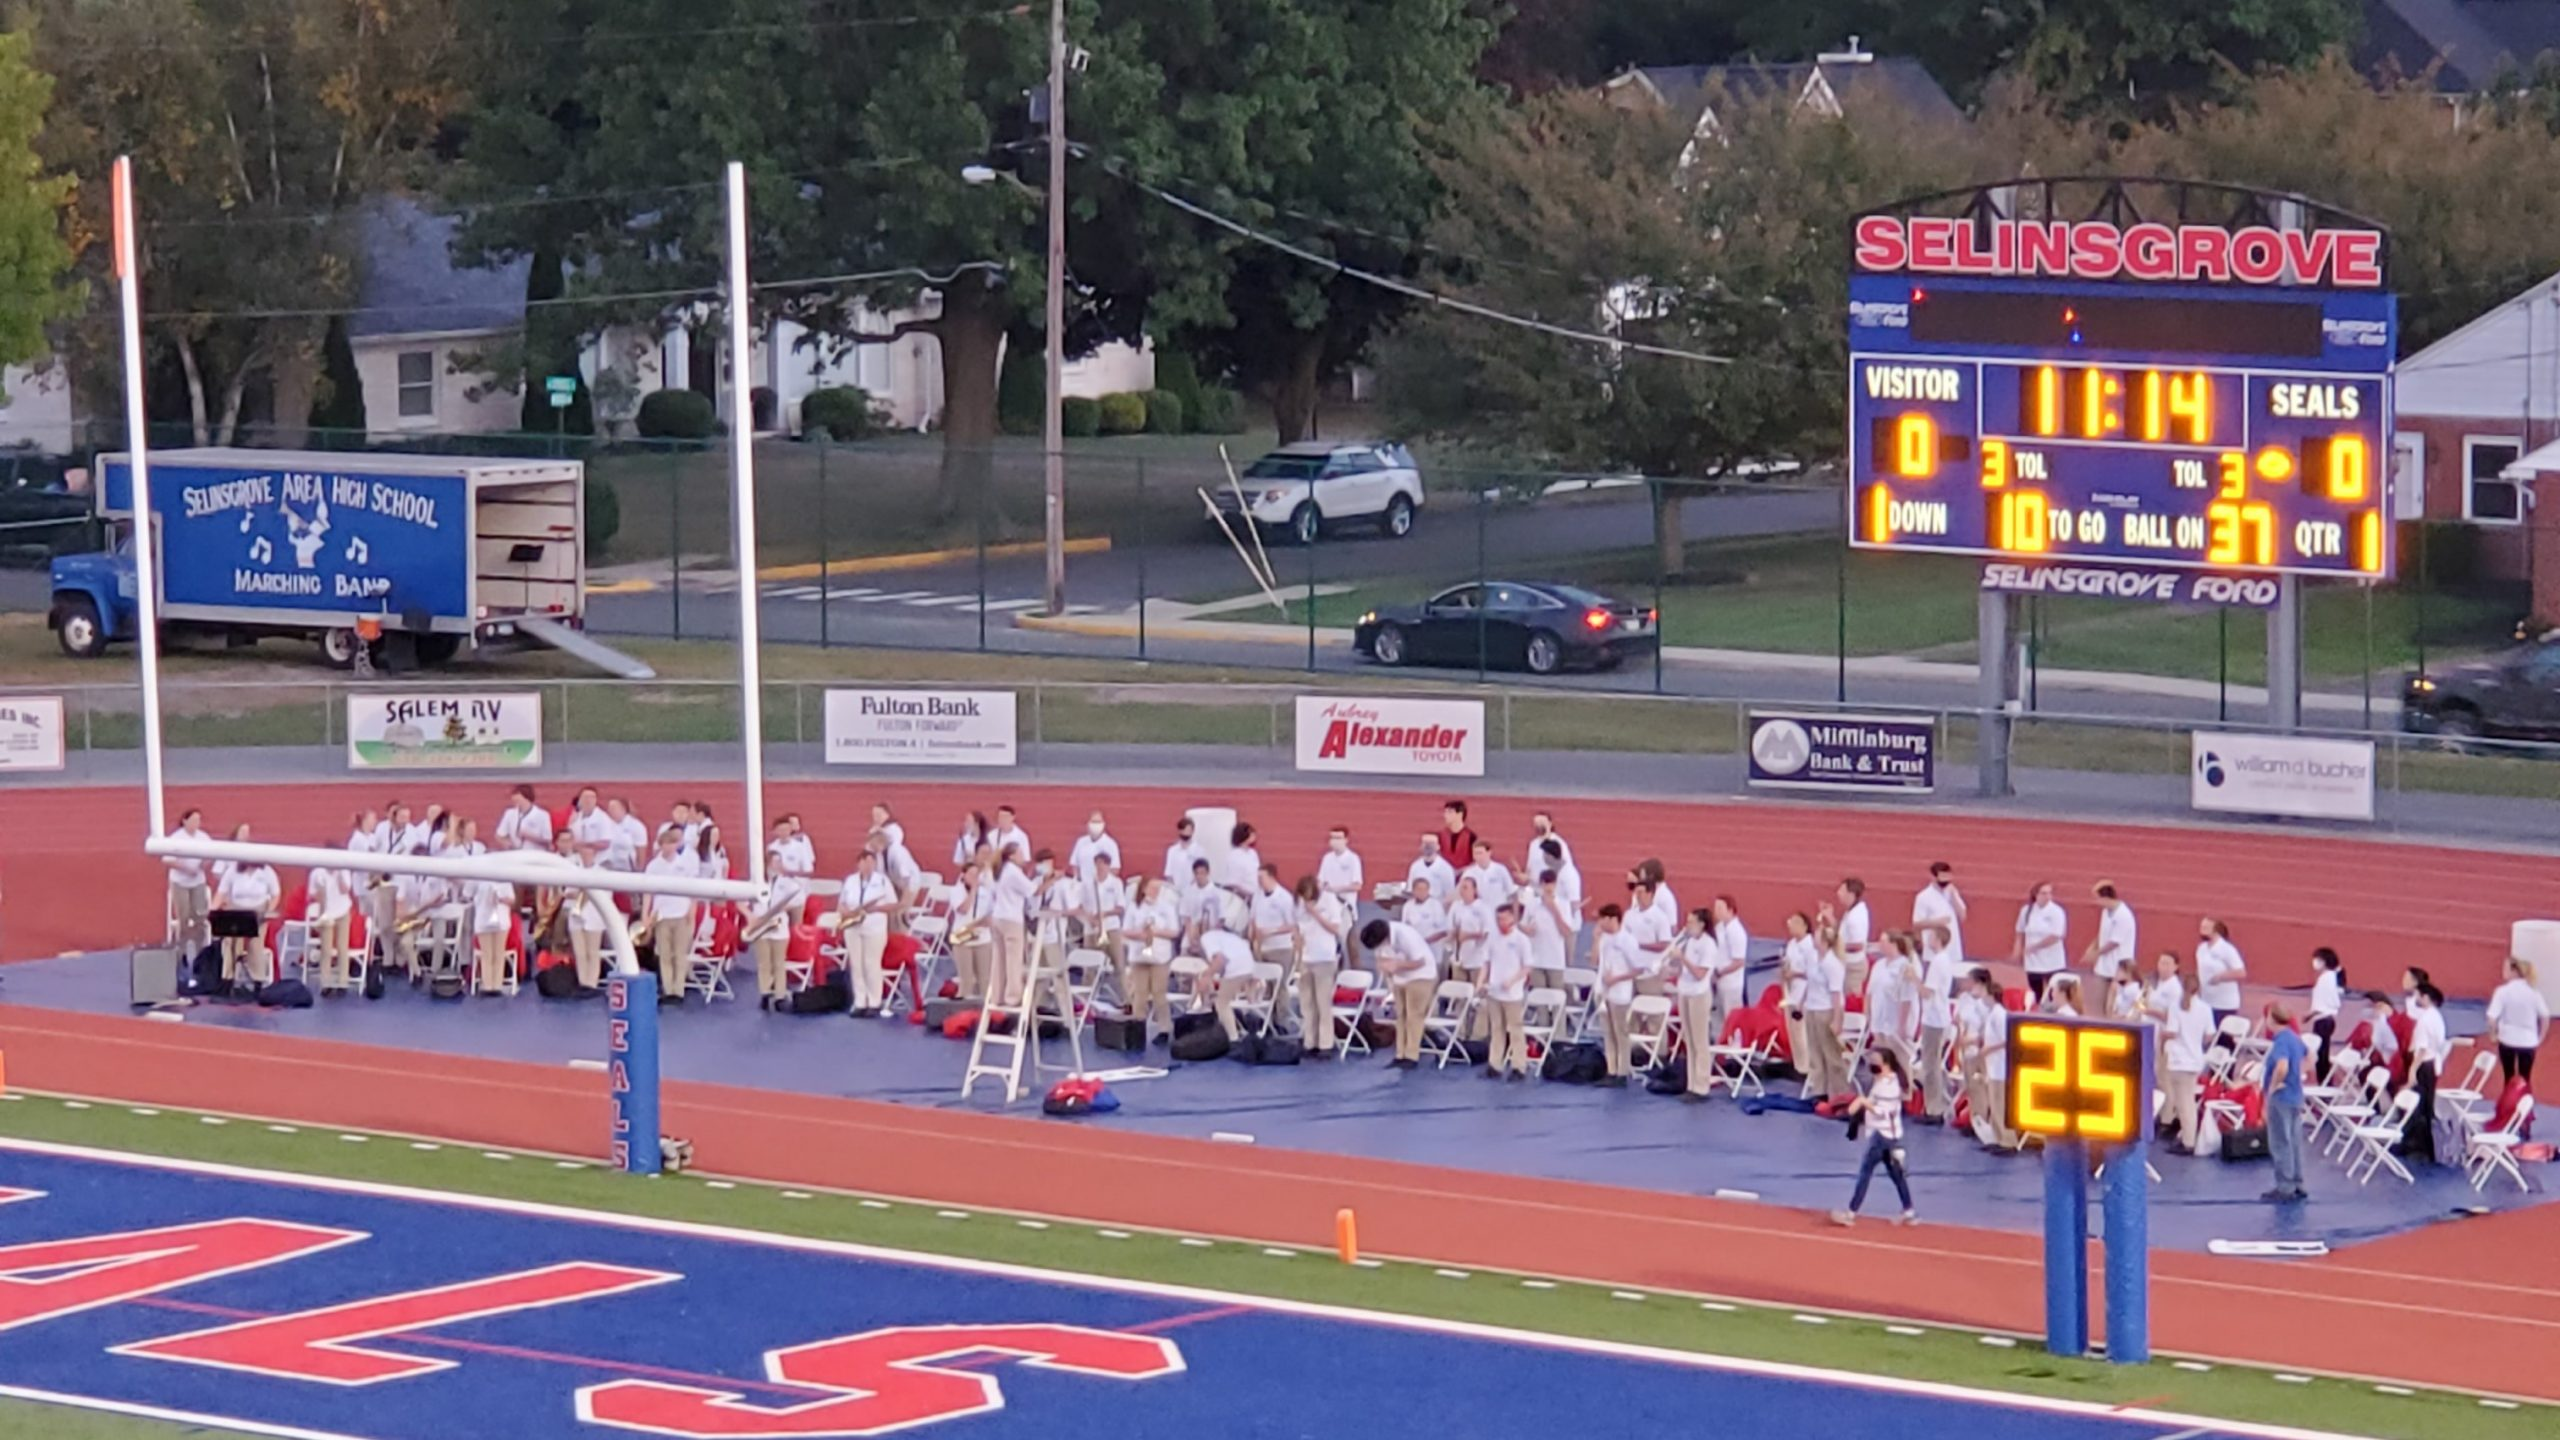 First home football game vs Shamokin – Band in the end zone!